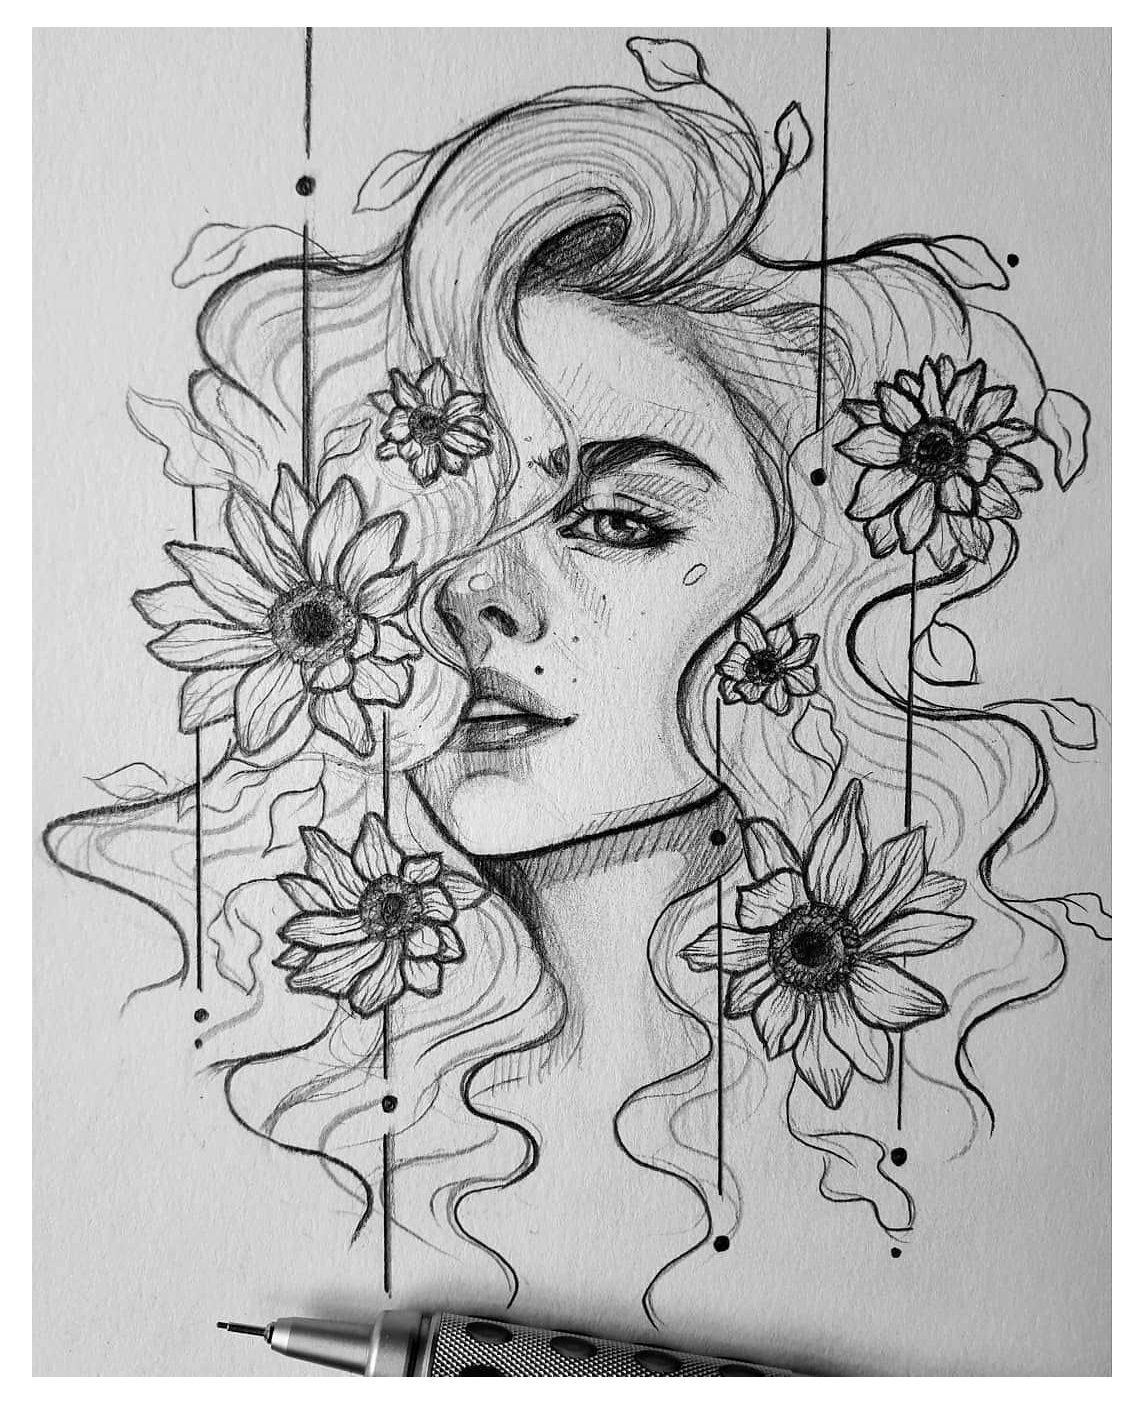 Photo of pencil art drawings sketches creative inspiration